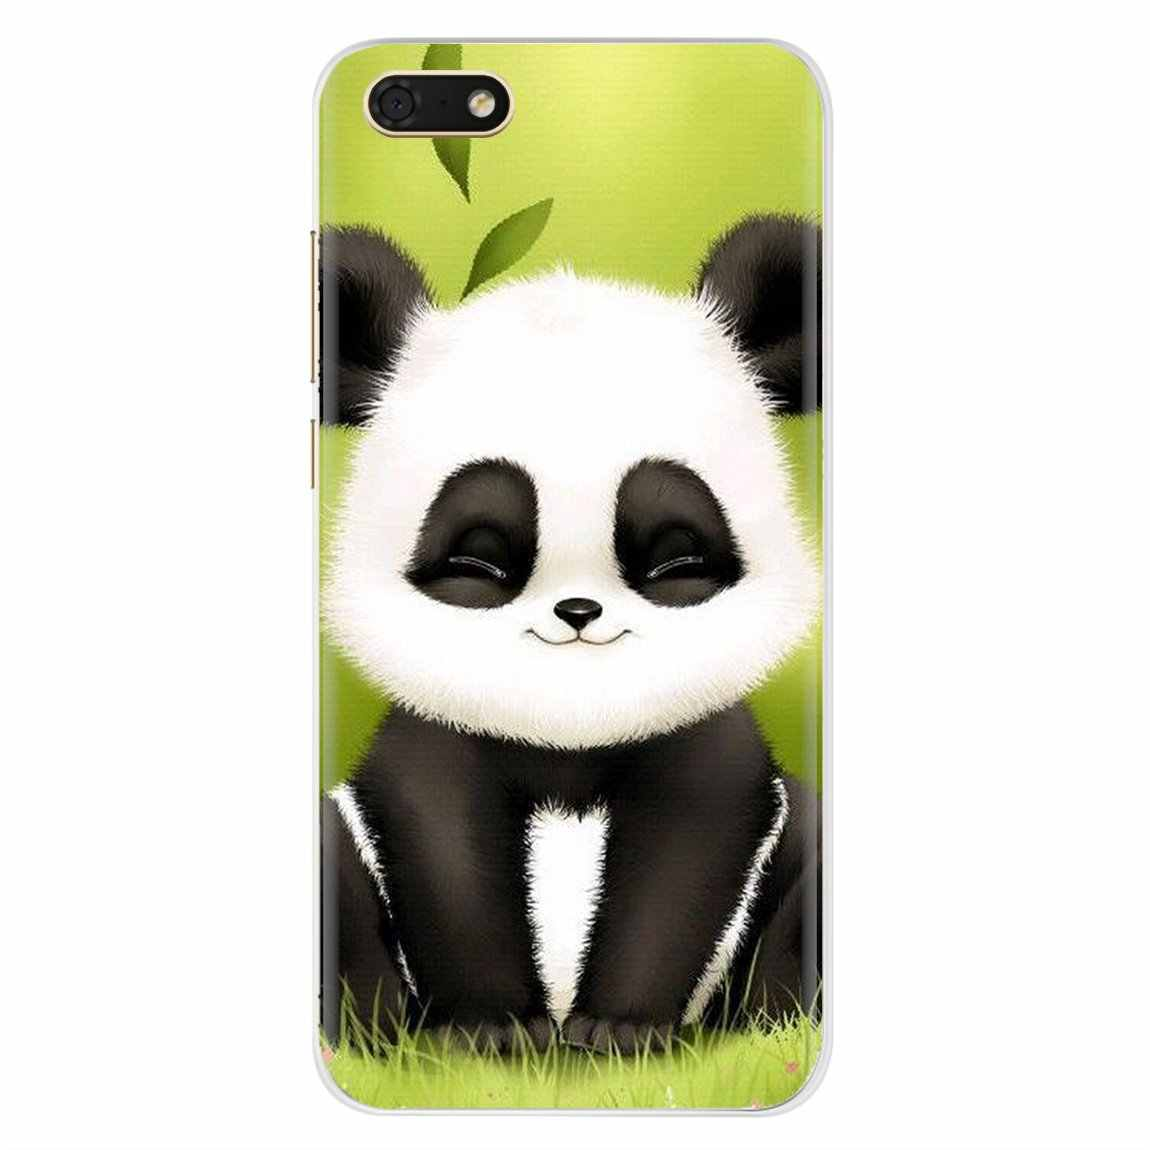 Funny Cute Panda Cartoon Wallpaper Silicone Phone Case For Samsung Galaxy J1 J2 J3 J4 J5 J6 J7 J8 Plus 2018 Prime 2015 2016 2017 Fitted Cases Aliexpress